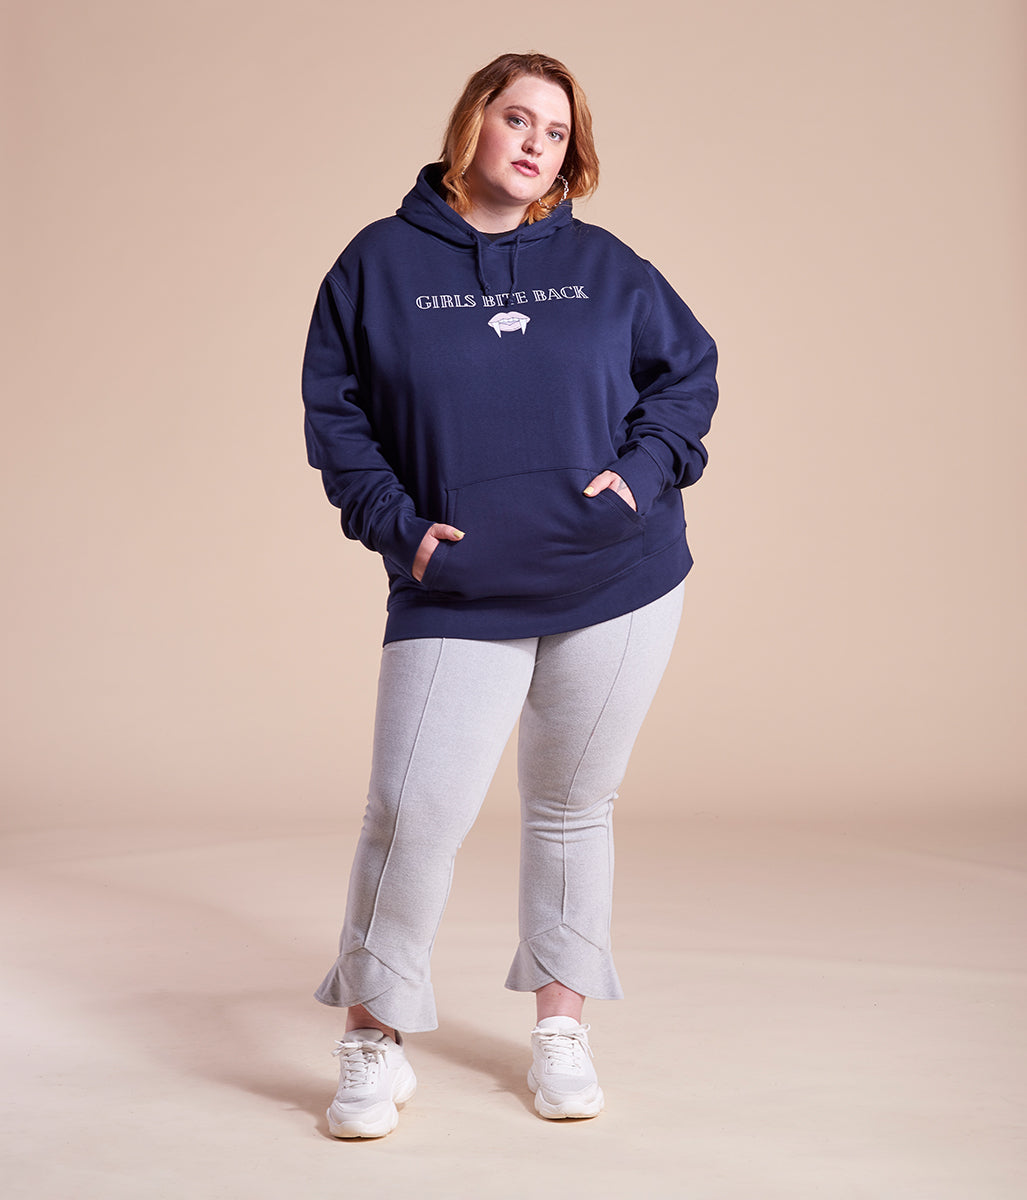 Laden Sie das Bild in den Galerie-Viewer, Favie Curvy Fashion nachhaltiger Hoodie Statement Girls Bite Back blau Plus Size Vorderansicht